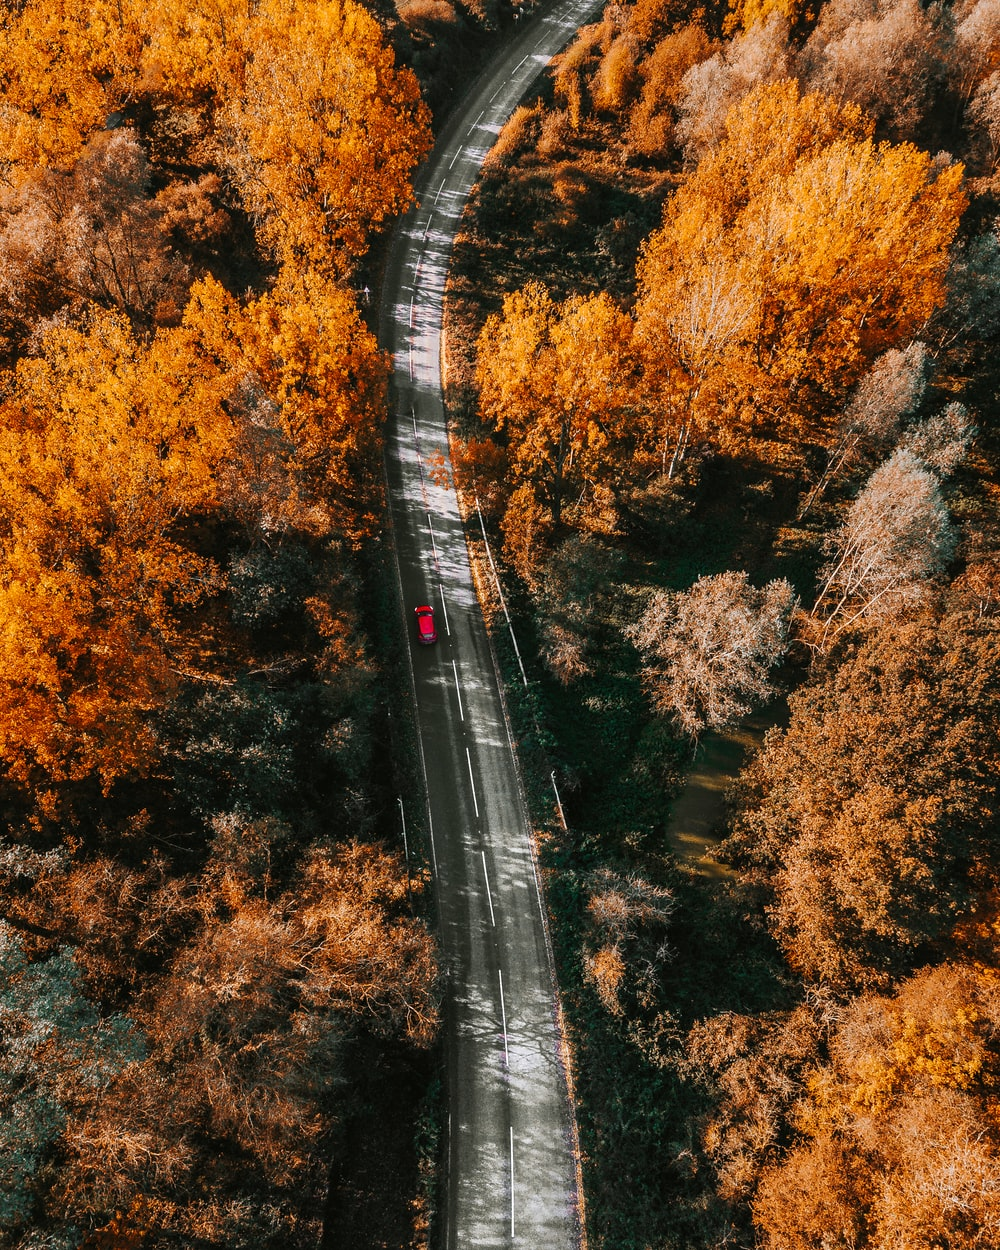 aerial photography of red vehicle on road surrounded with tall and orange trees during daytime